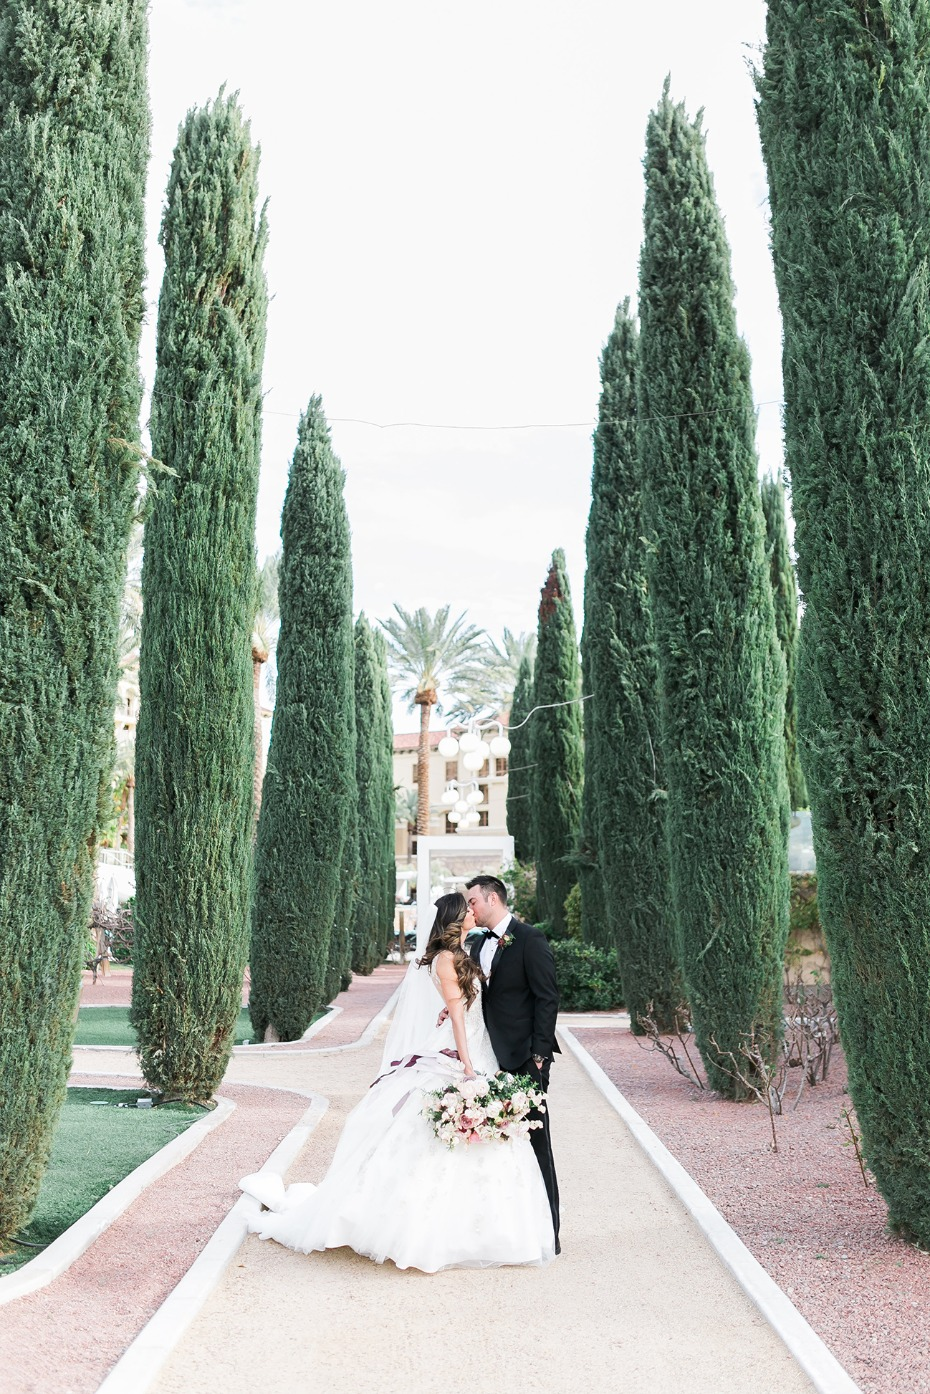 Stunning Las Vegas wedding